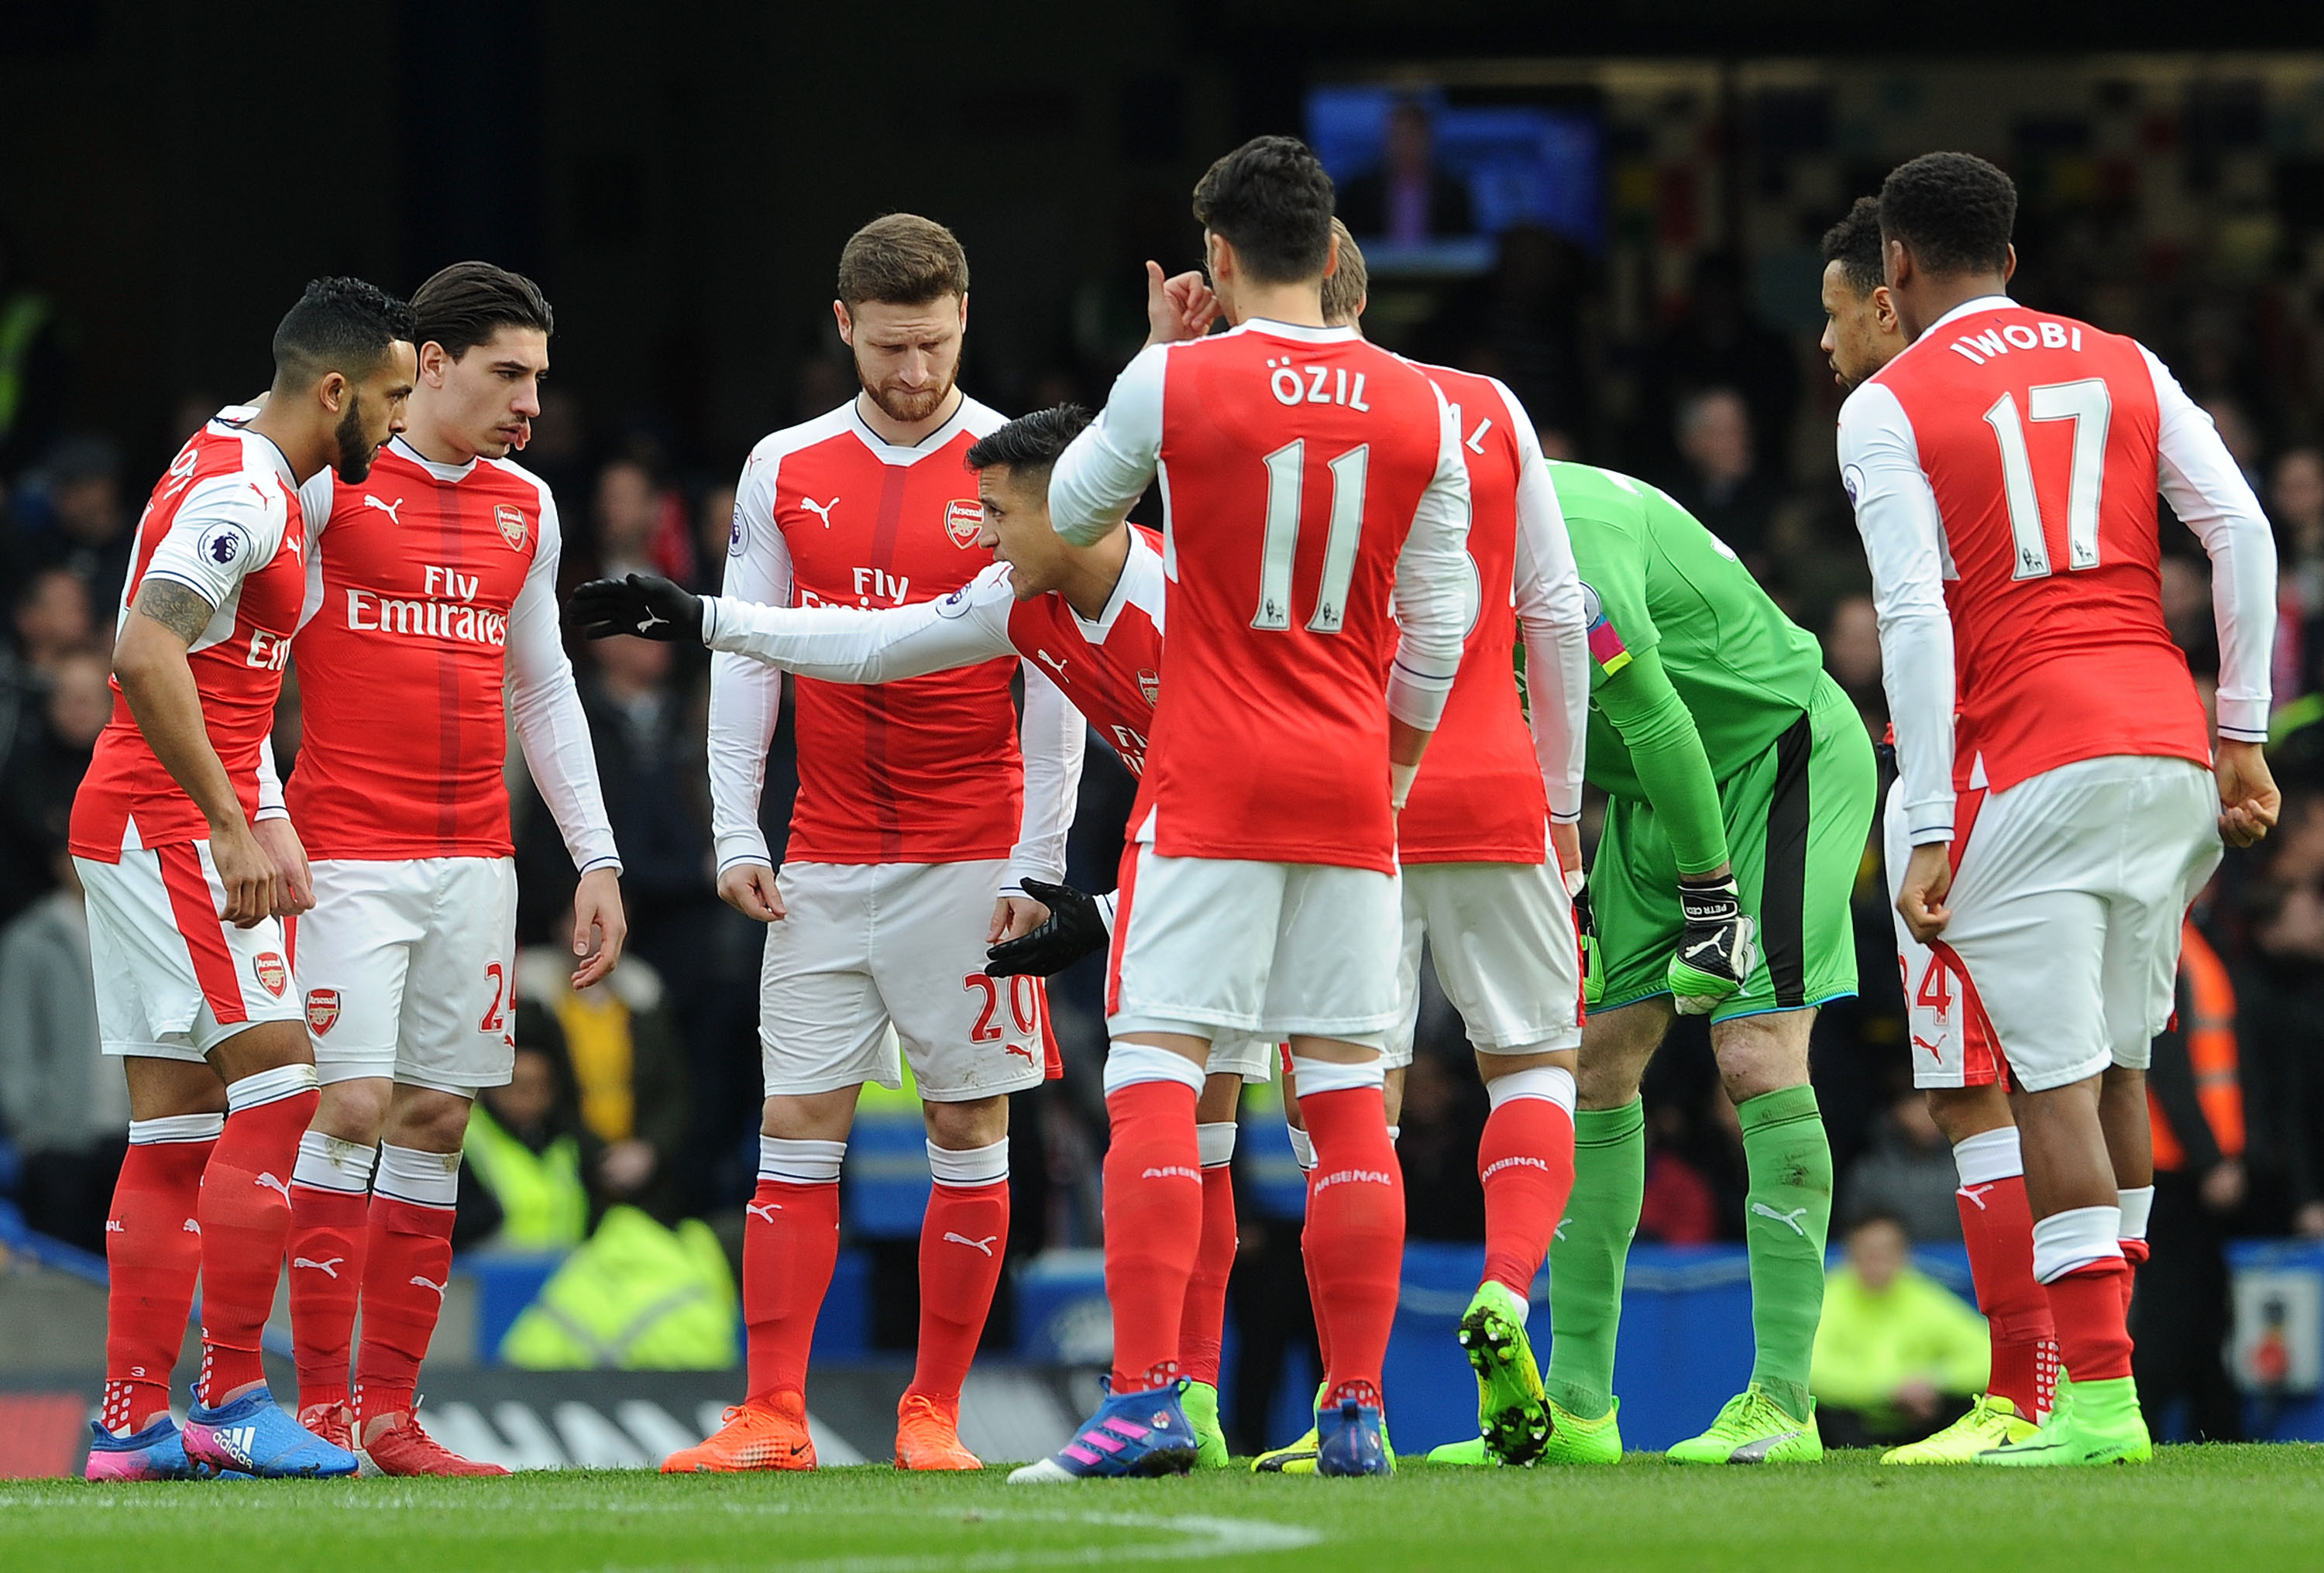 Arsenal players need to show more leadership, says Ray Parlour